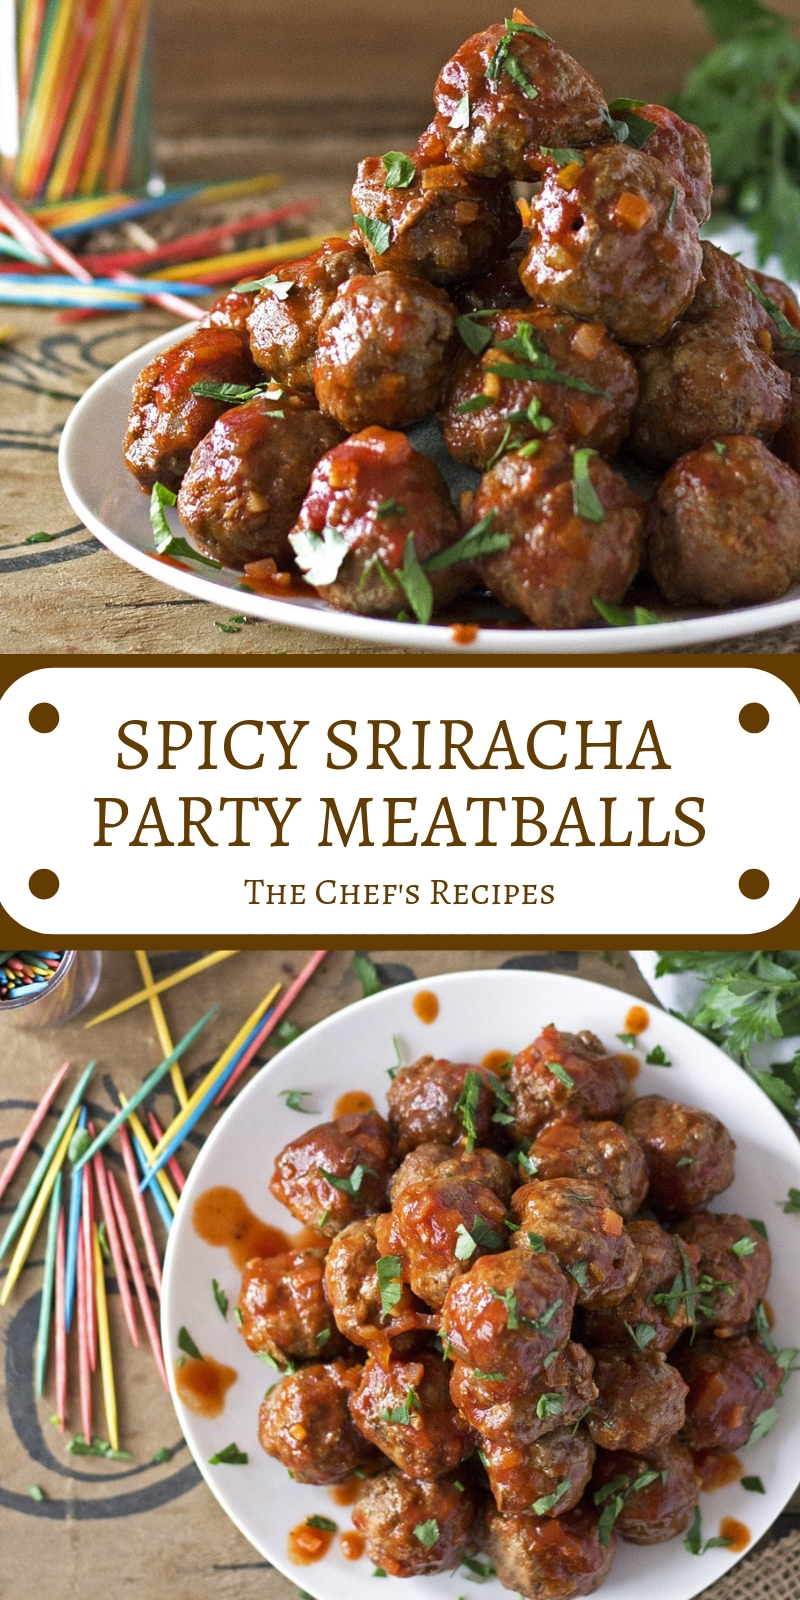 SPICY SRIRACHA PARTY MEATBALLS